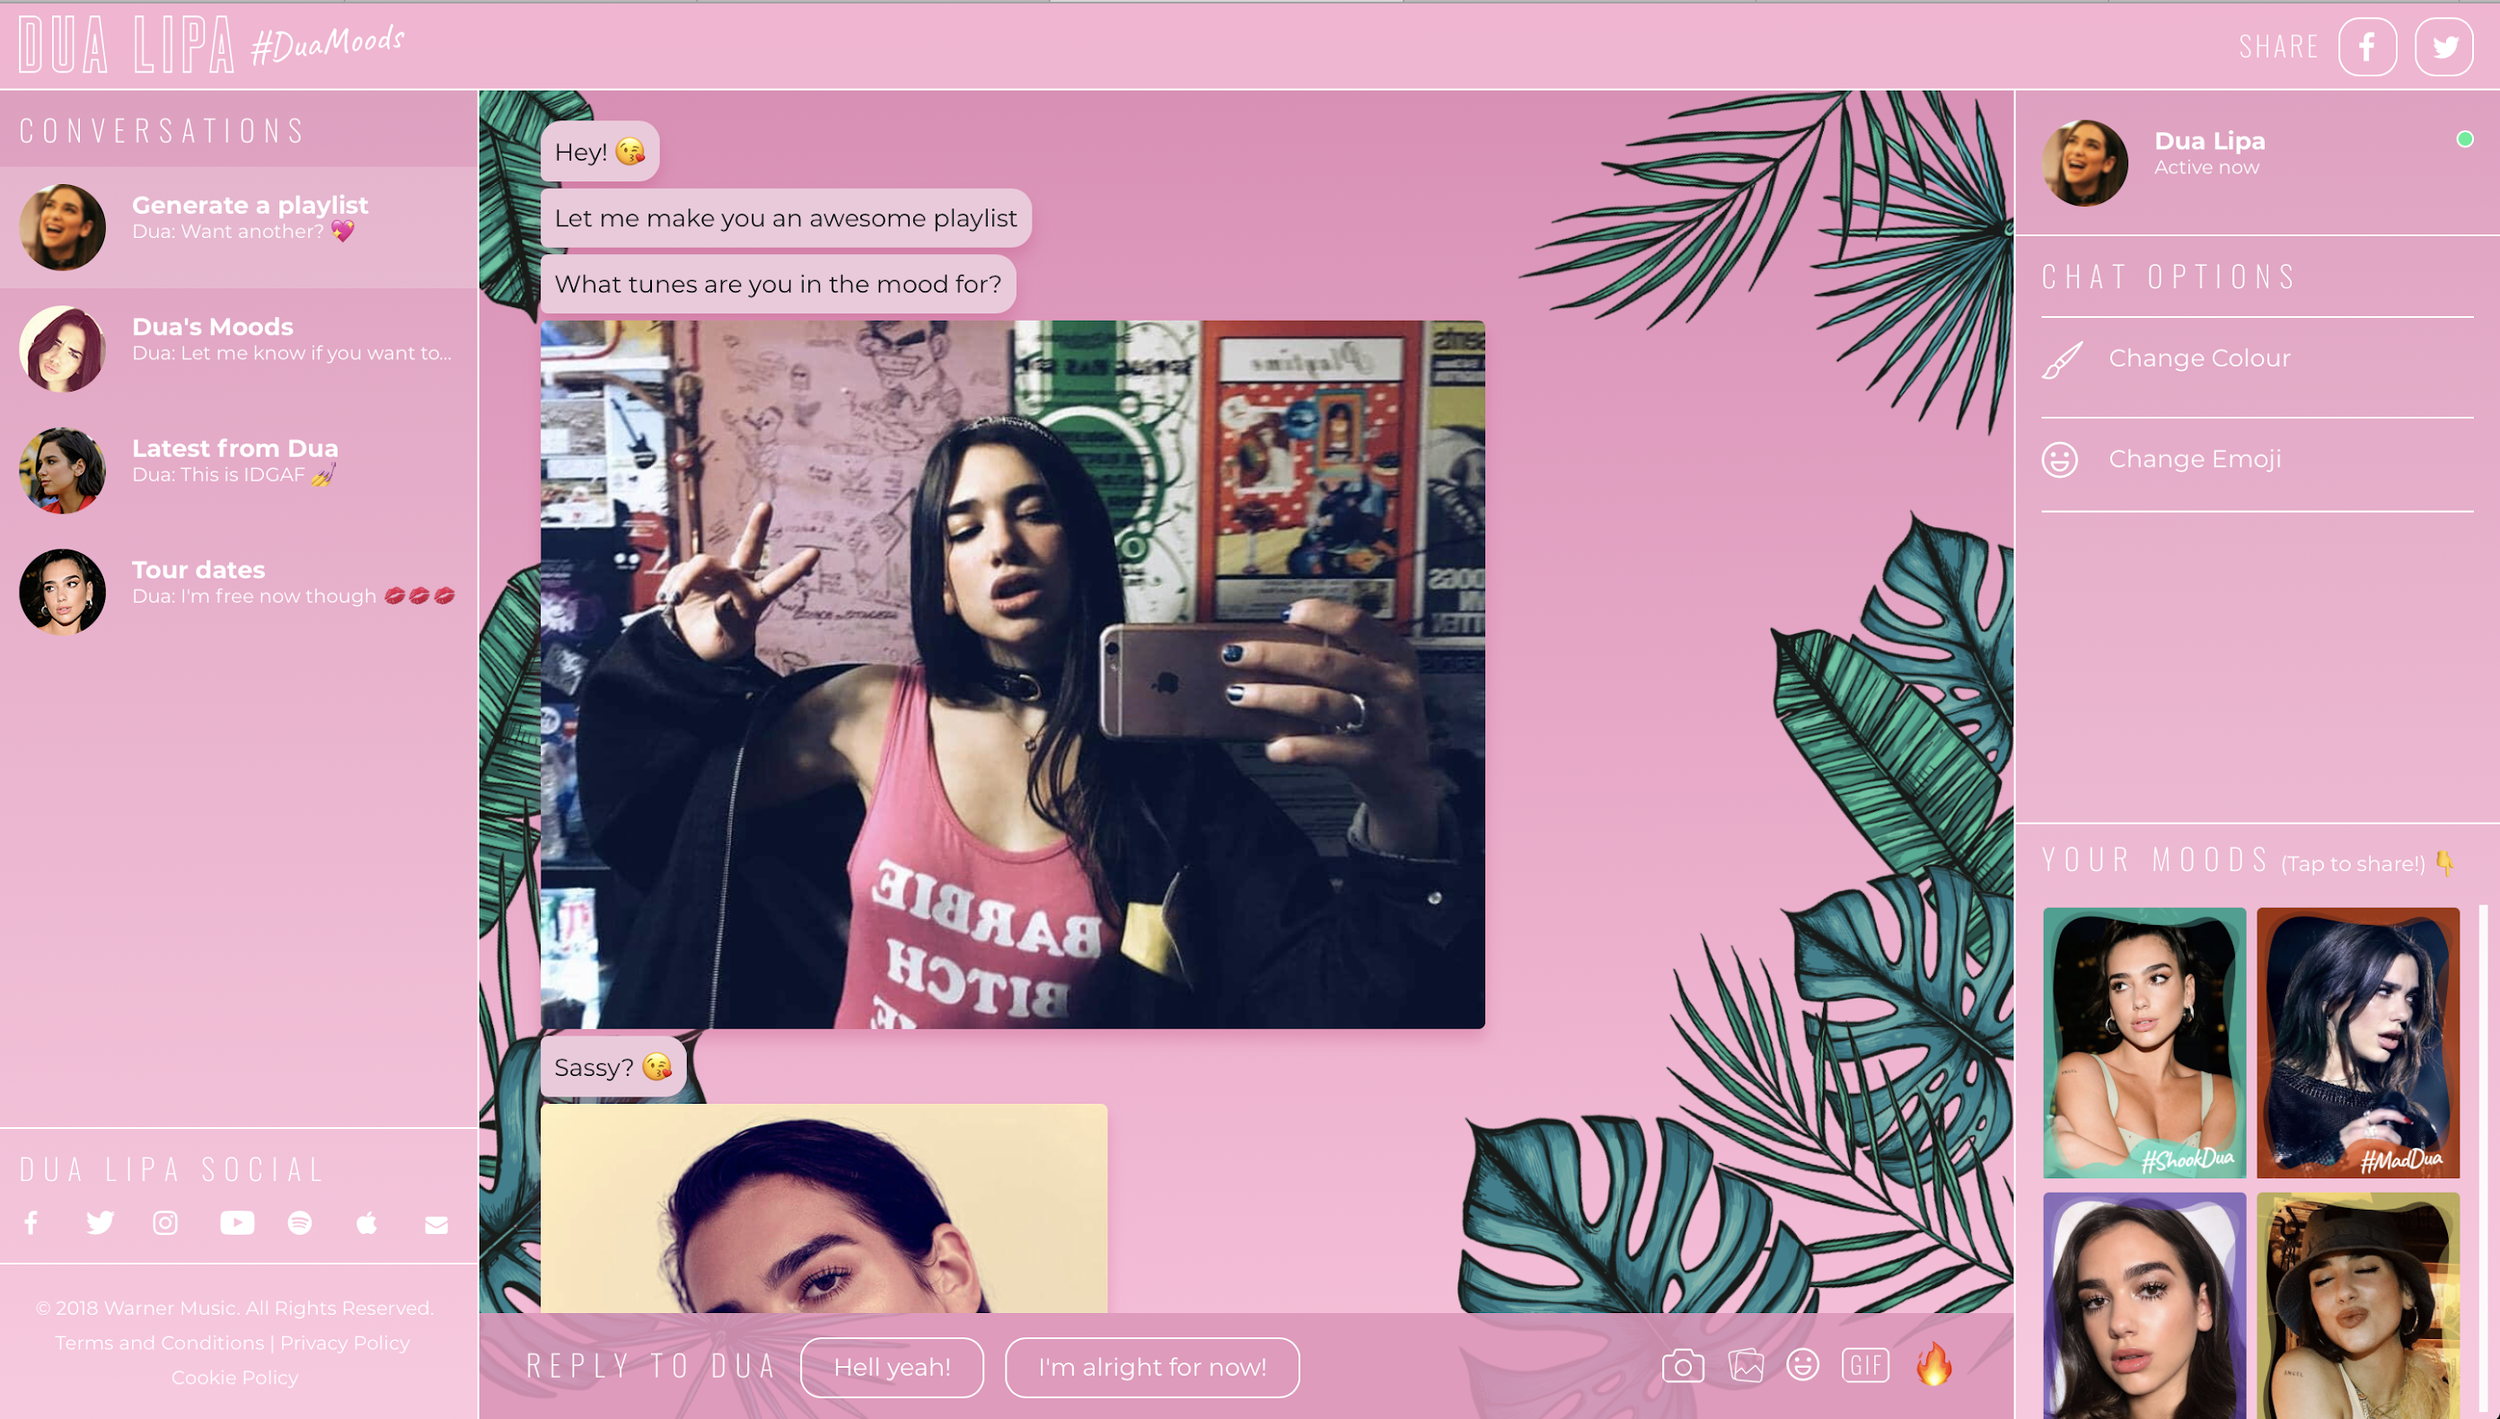 send a selfie to Dua Lipa and she'll send you a playlist based on your pic